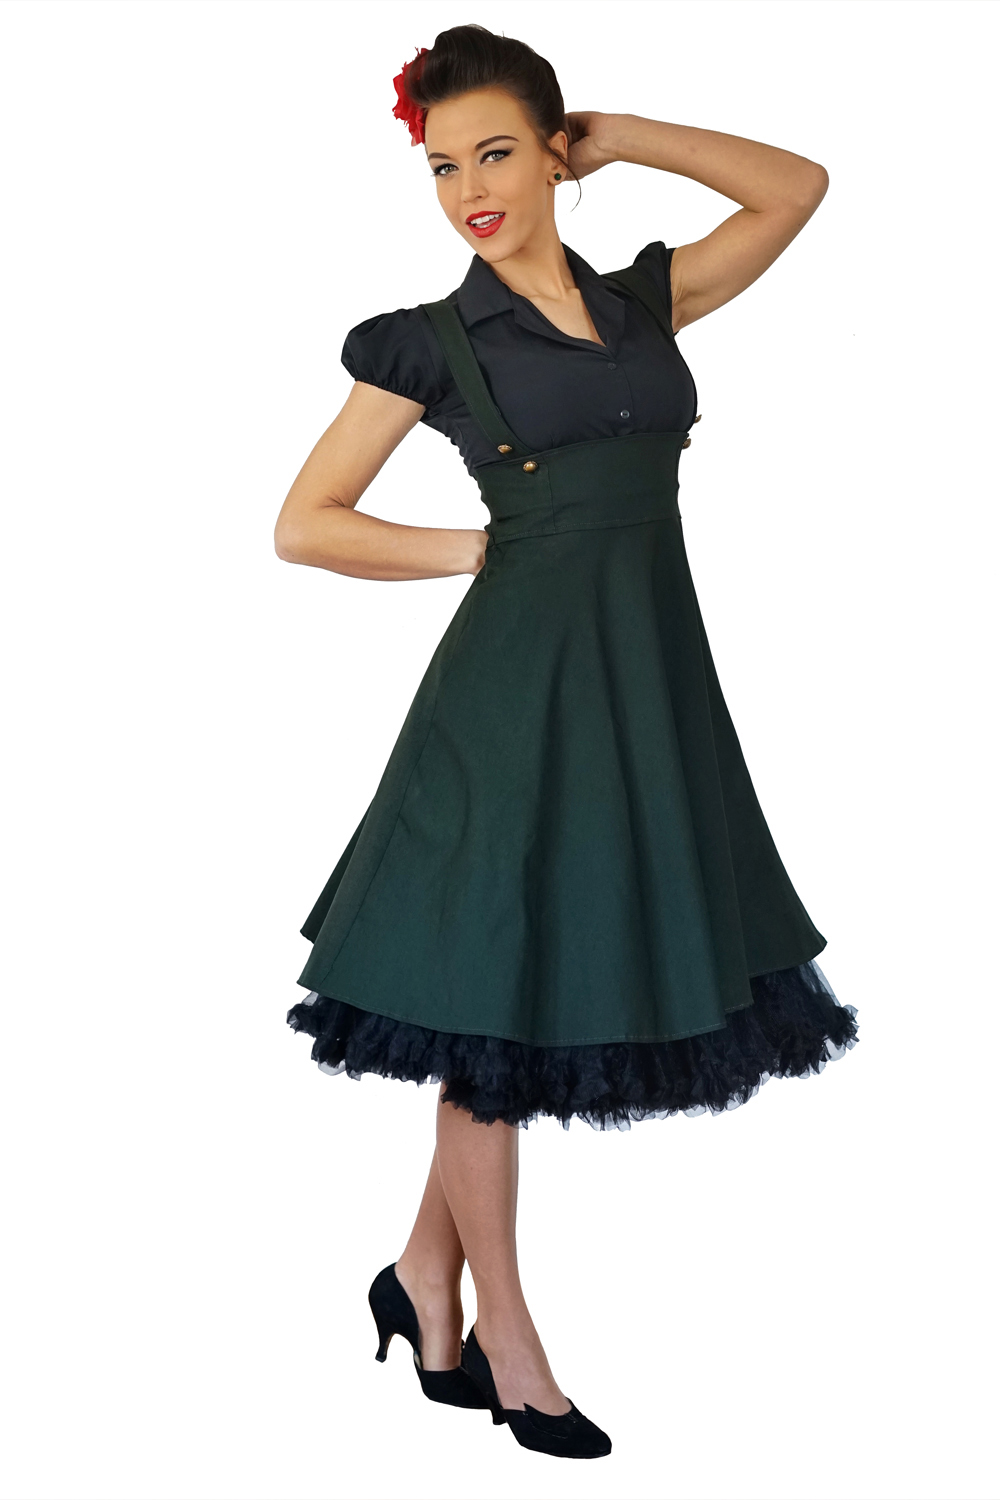 rockabilly retro Hemdkleid Uniform Hosenträger Swing Petticoat Kleid